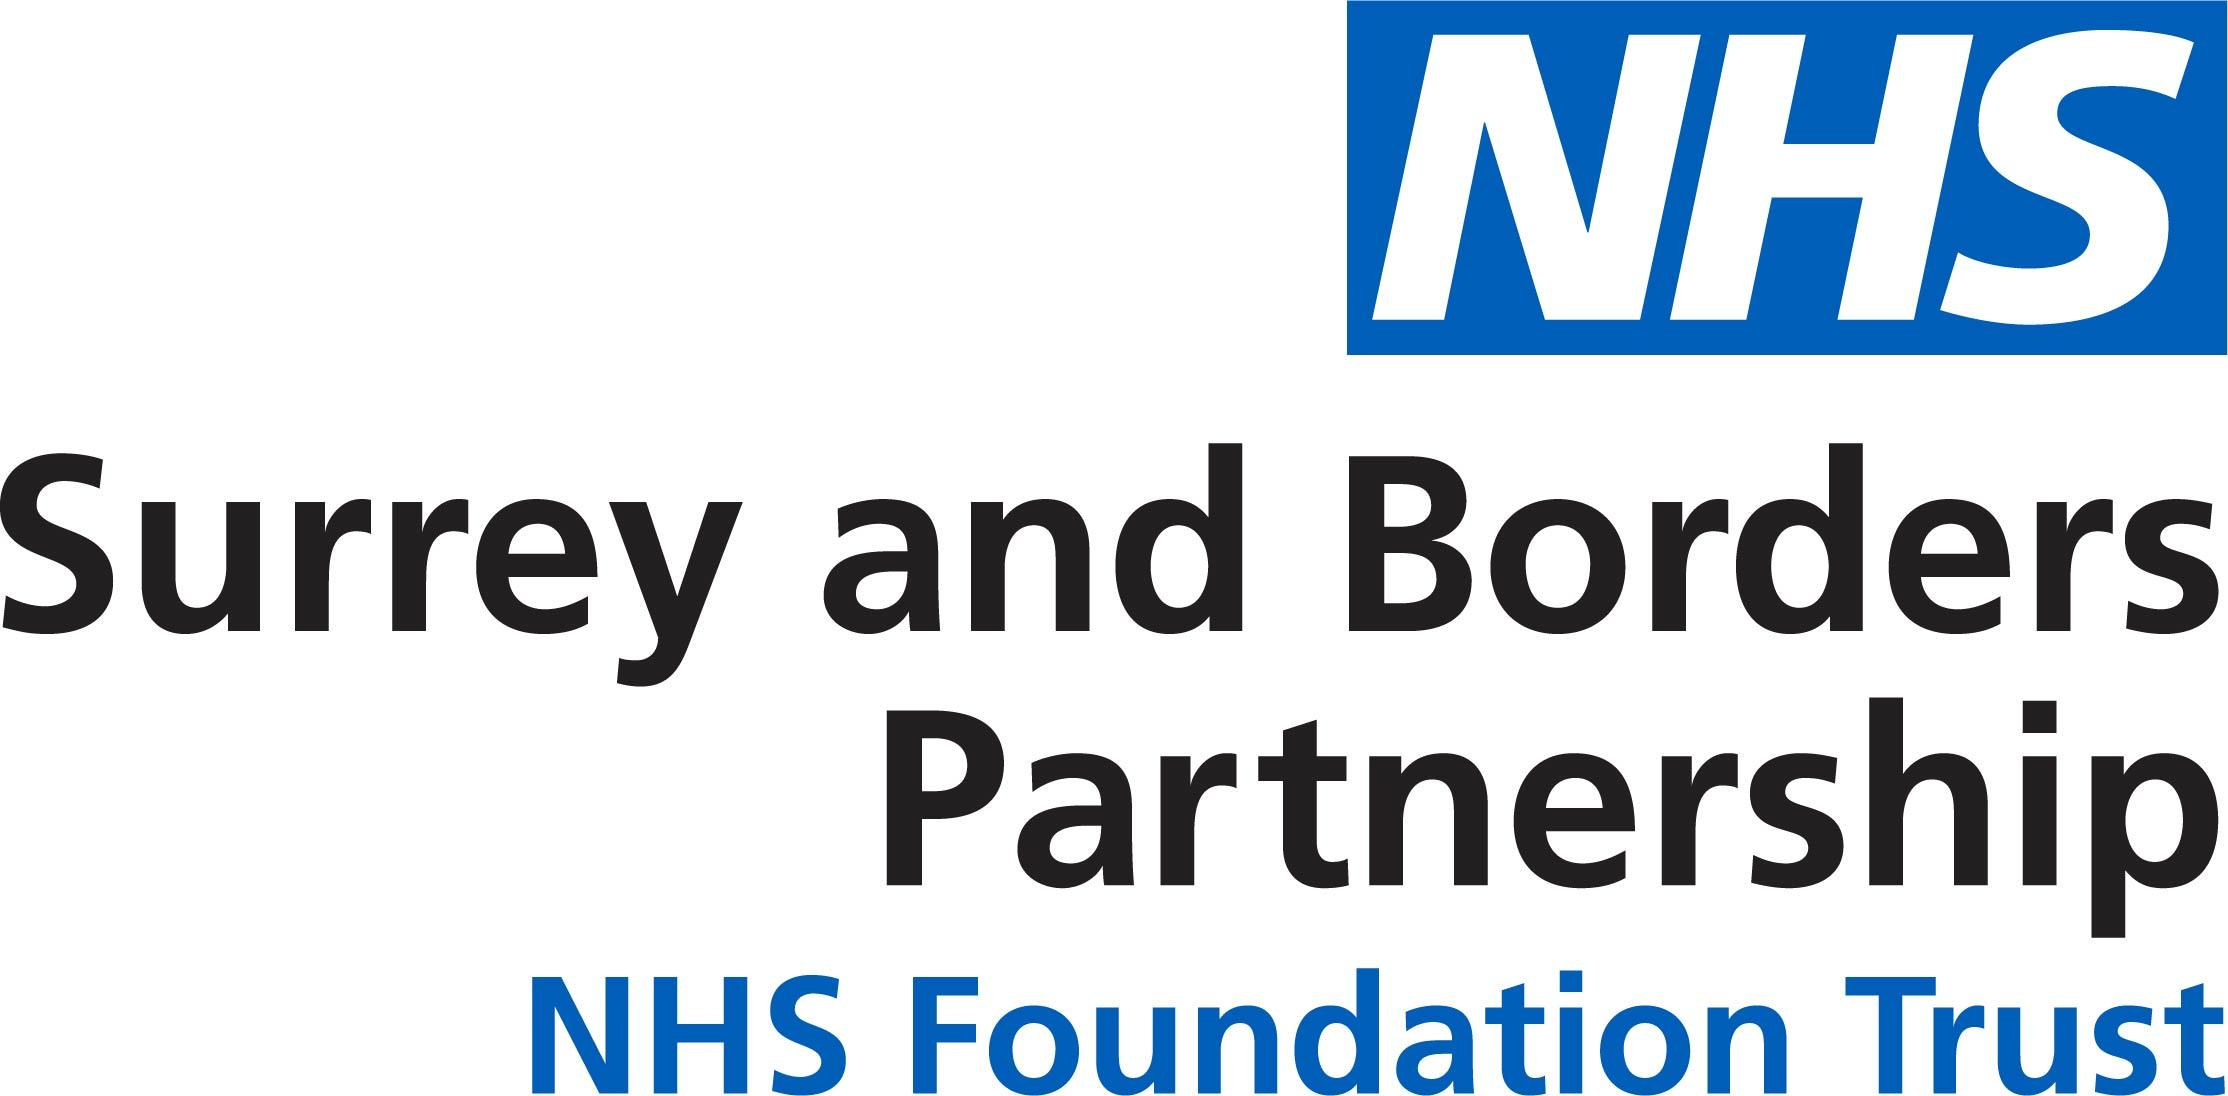 Surrey and Borders Partnership NHS Foundation Trust uses RIVIAM's referral management and workflow solution to deliver the Children and Family Health Service logo